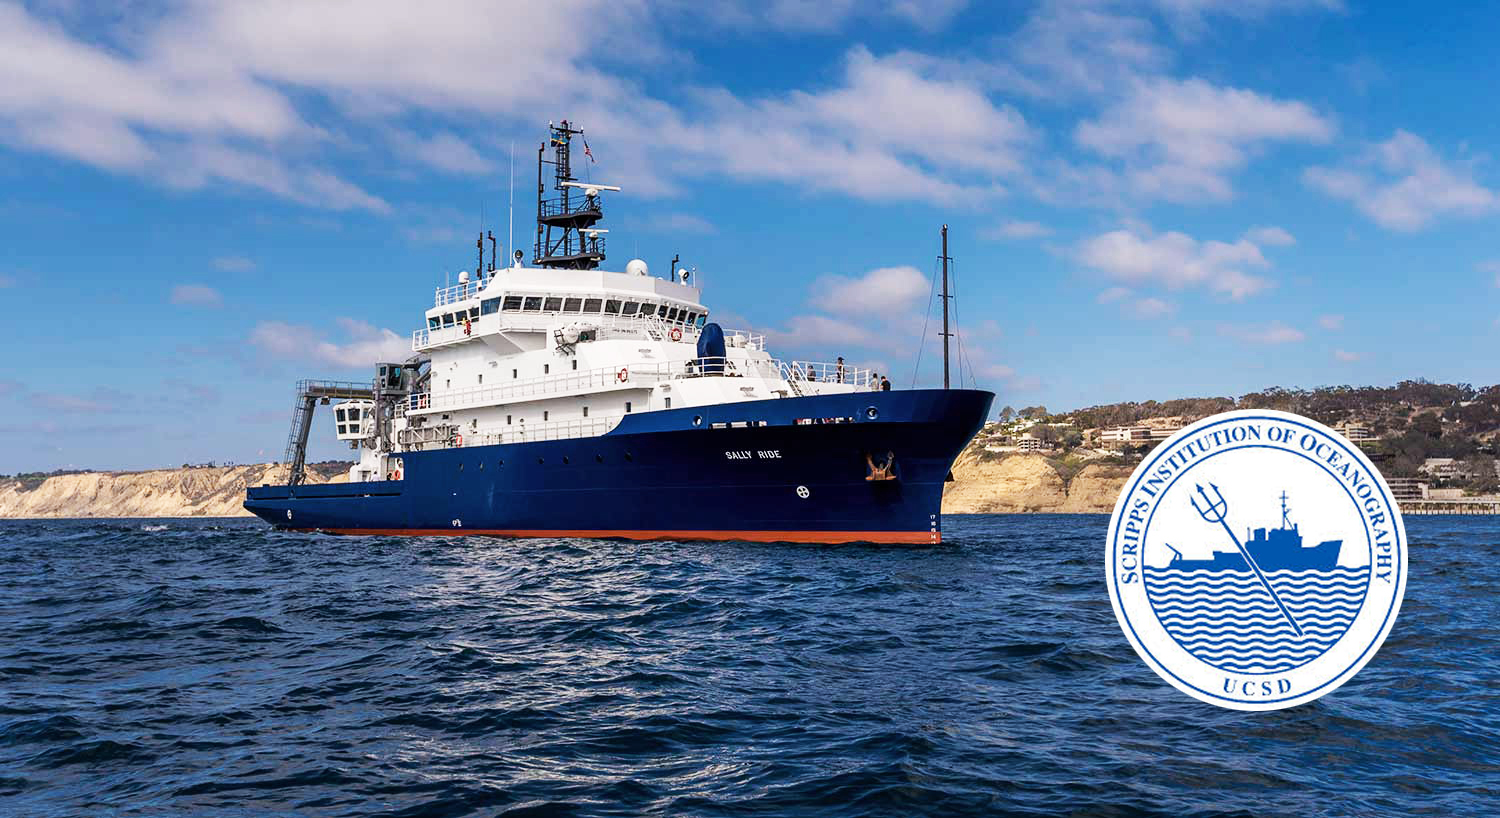 Scripps Institute of Oceanography! These La Jolla heroes are conducting scientific research with one of the largest academic research fleets, on a pretty big campus – the ocean! Also, go see their wonderful Birch Aquarium.